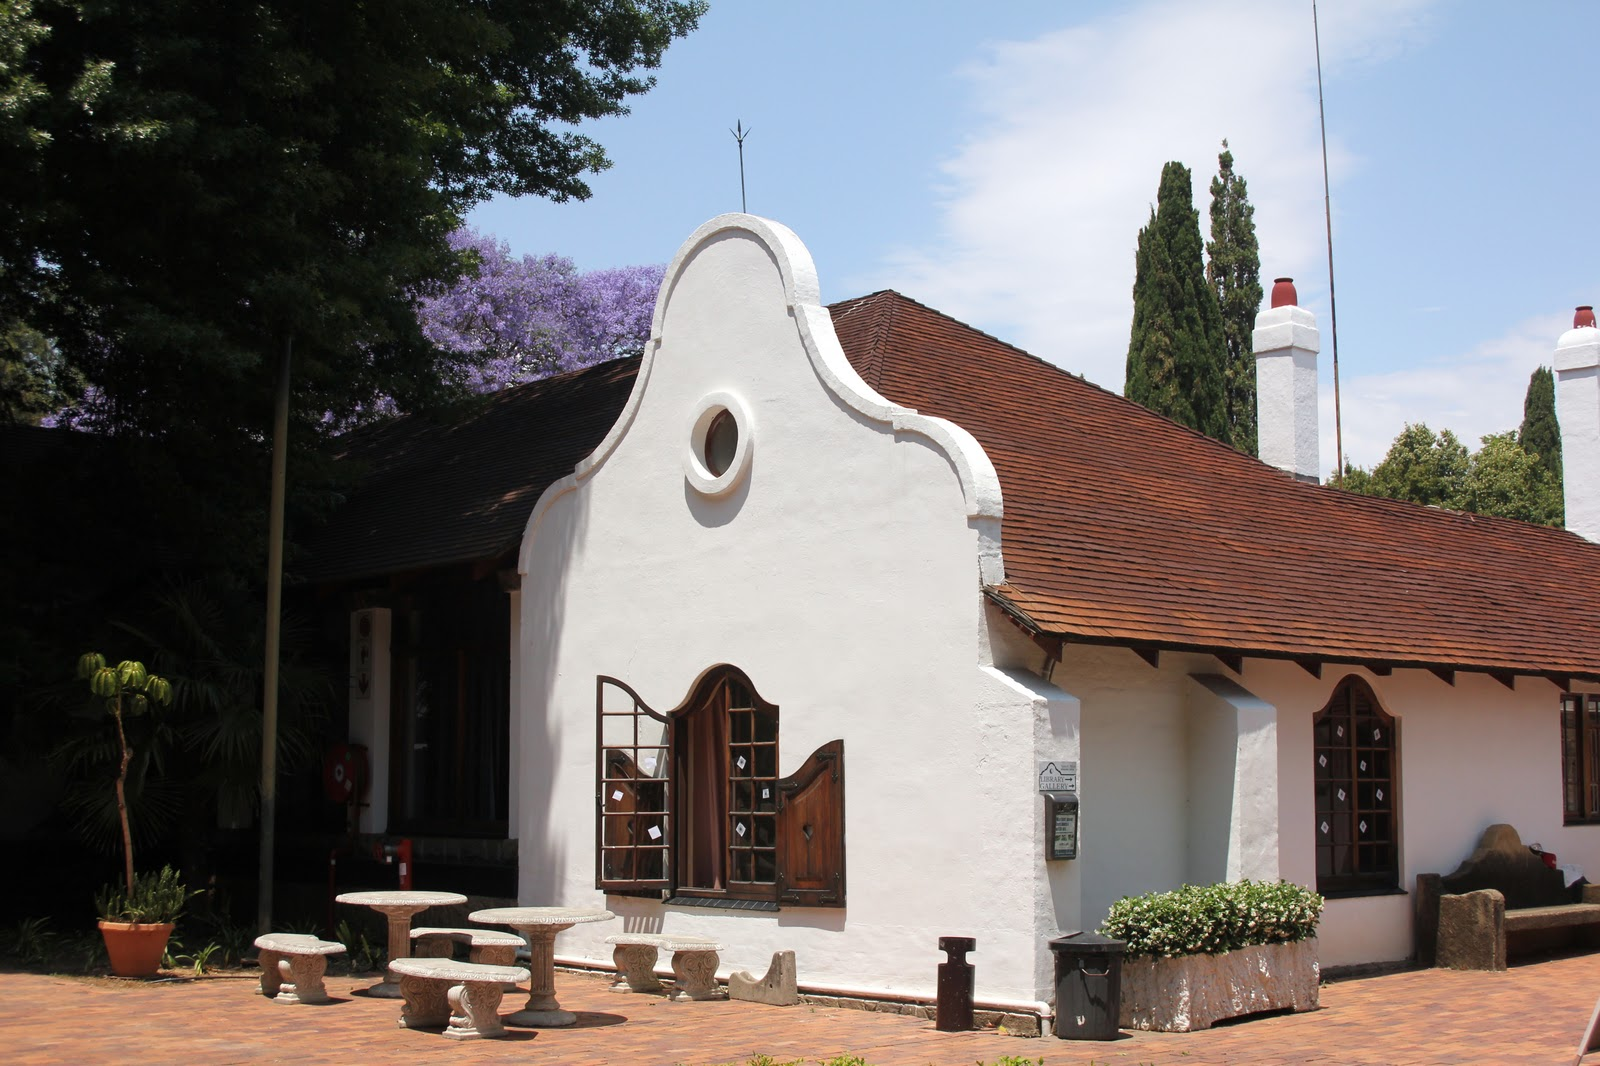 dutch cape library architecture manor joburg every converted hunt centre job bad community place been